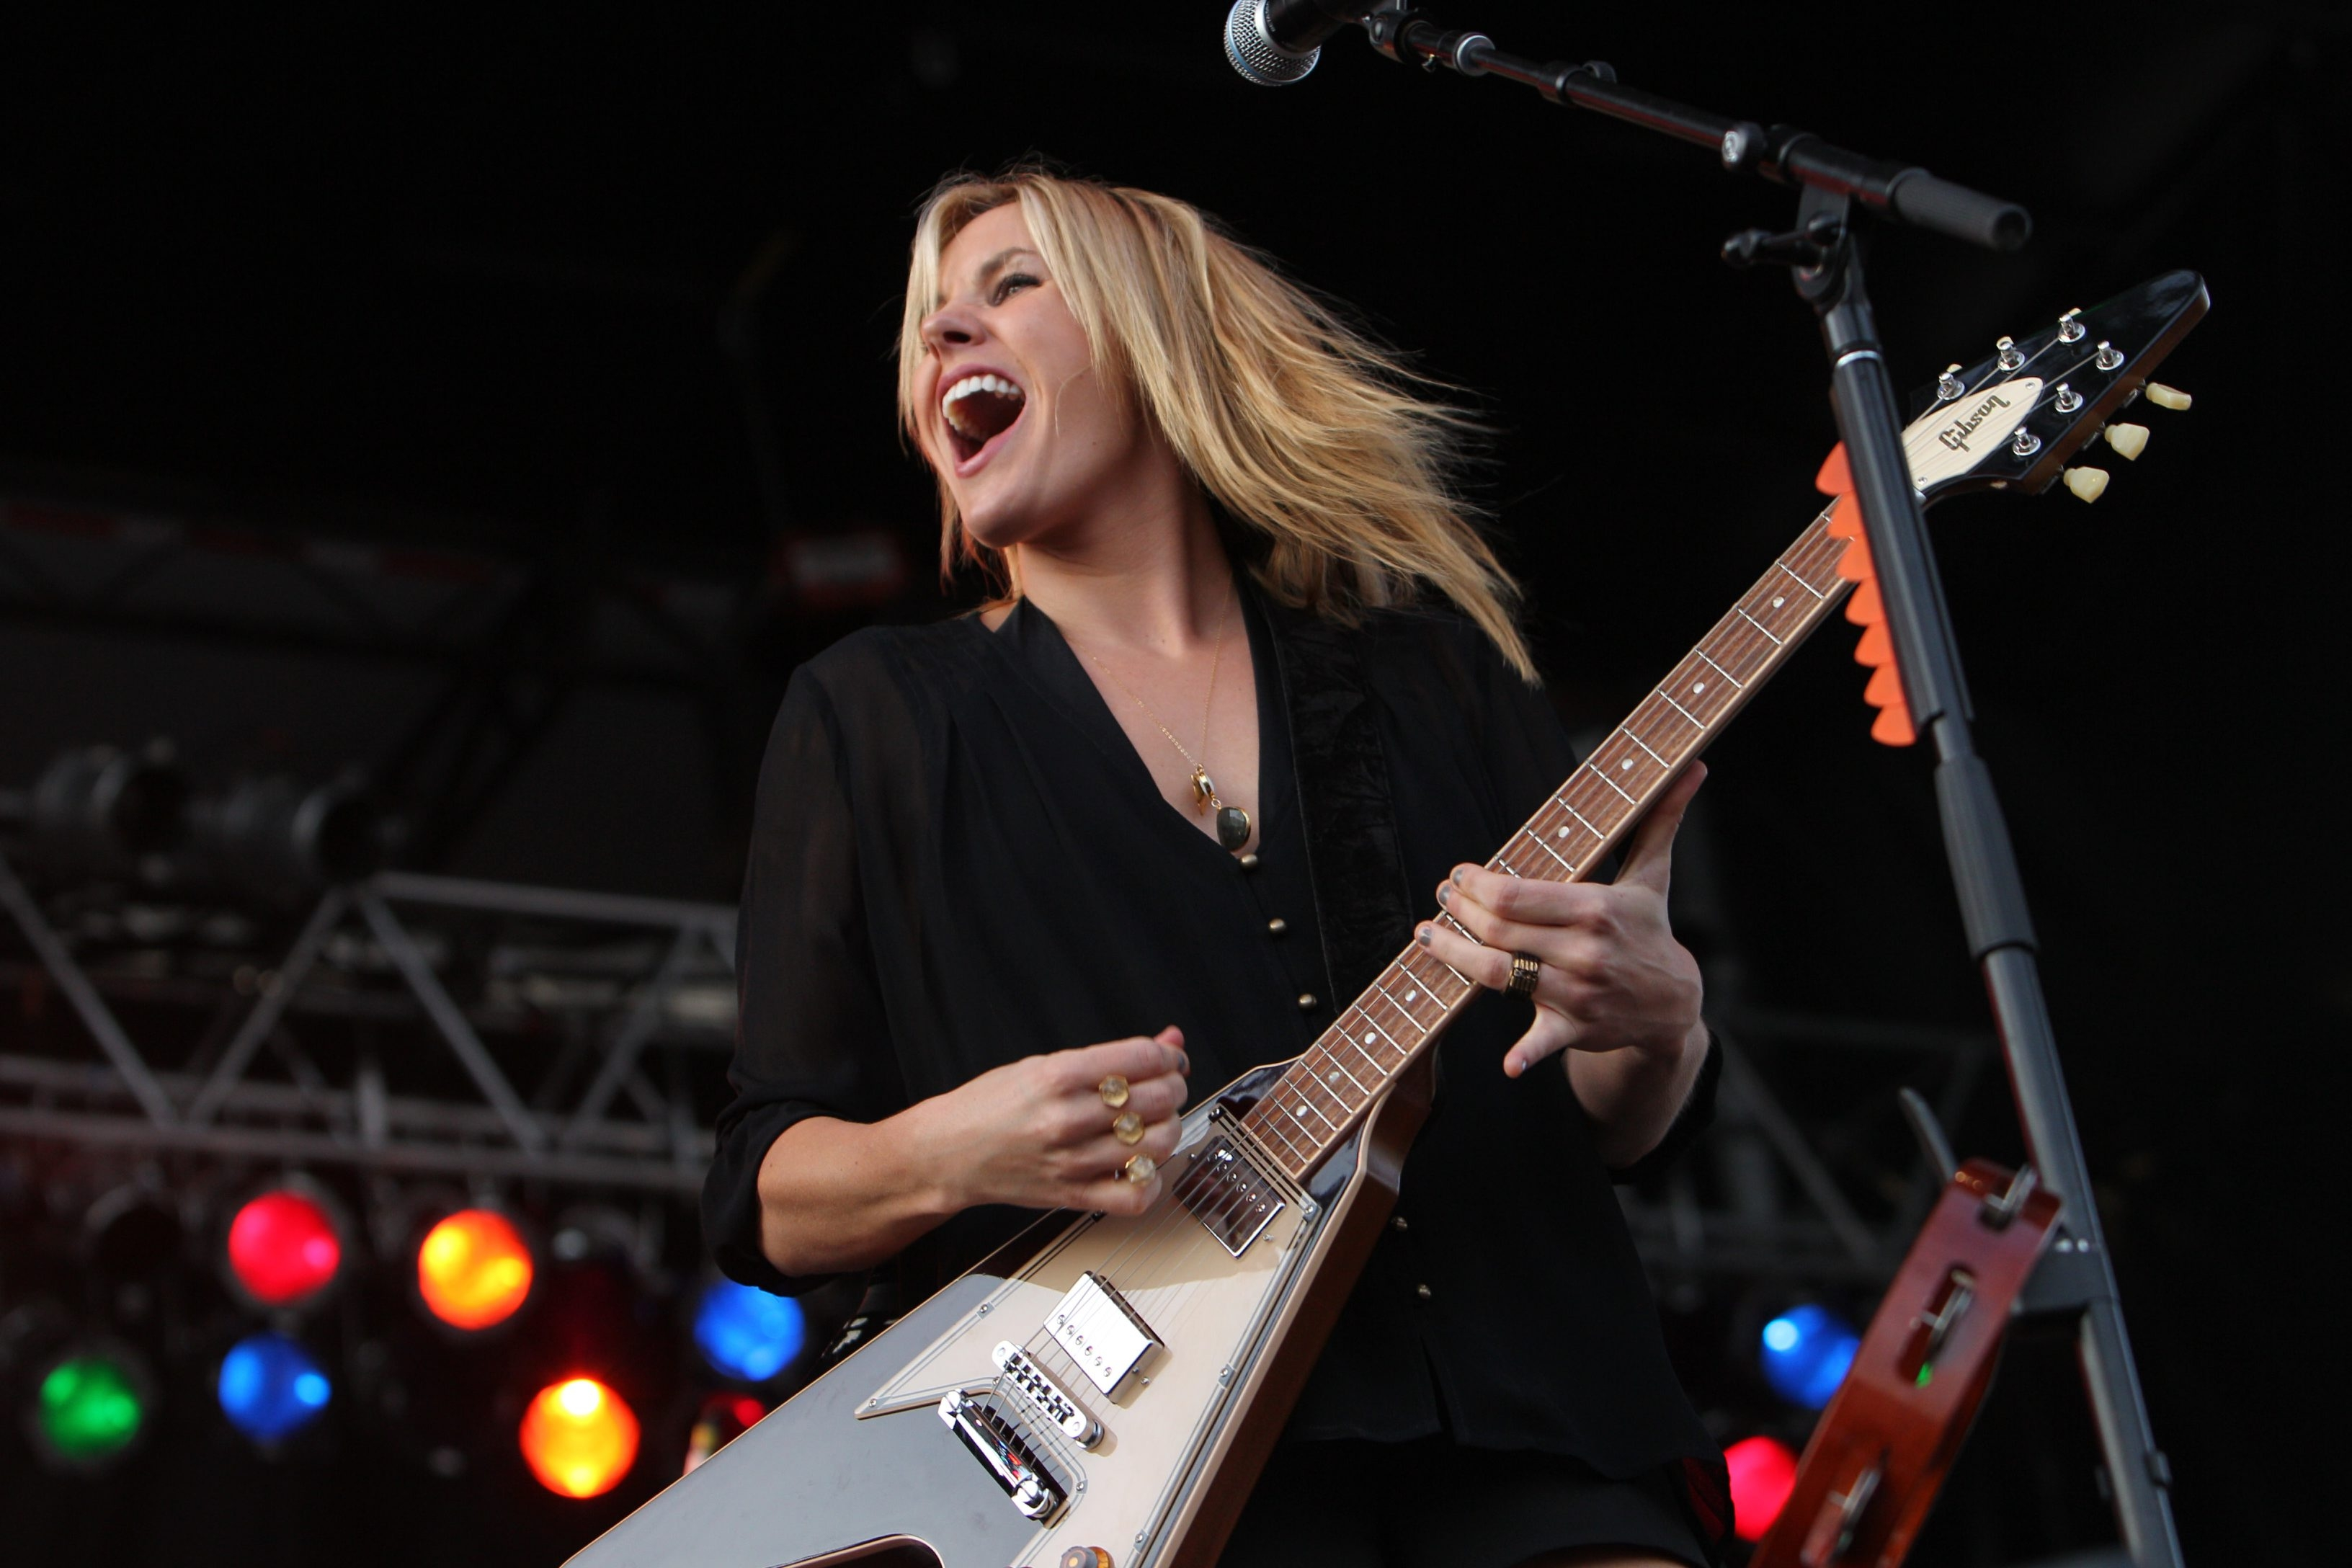 """Grace Potter, her band and their music are much in demand. """"We'll play about 180 concerts this year,""""  Potter said.  """"For me, glamour is not a job, it's a choice. You have to strike the right balance between the music and the glamour. If you do it right, it can really work to your advantage."""" – Grace Potter"""